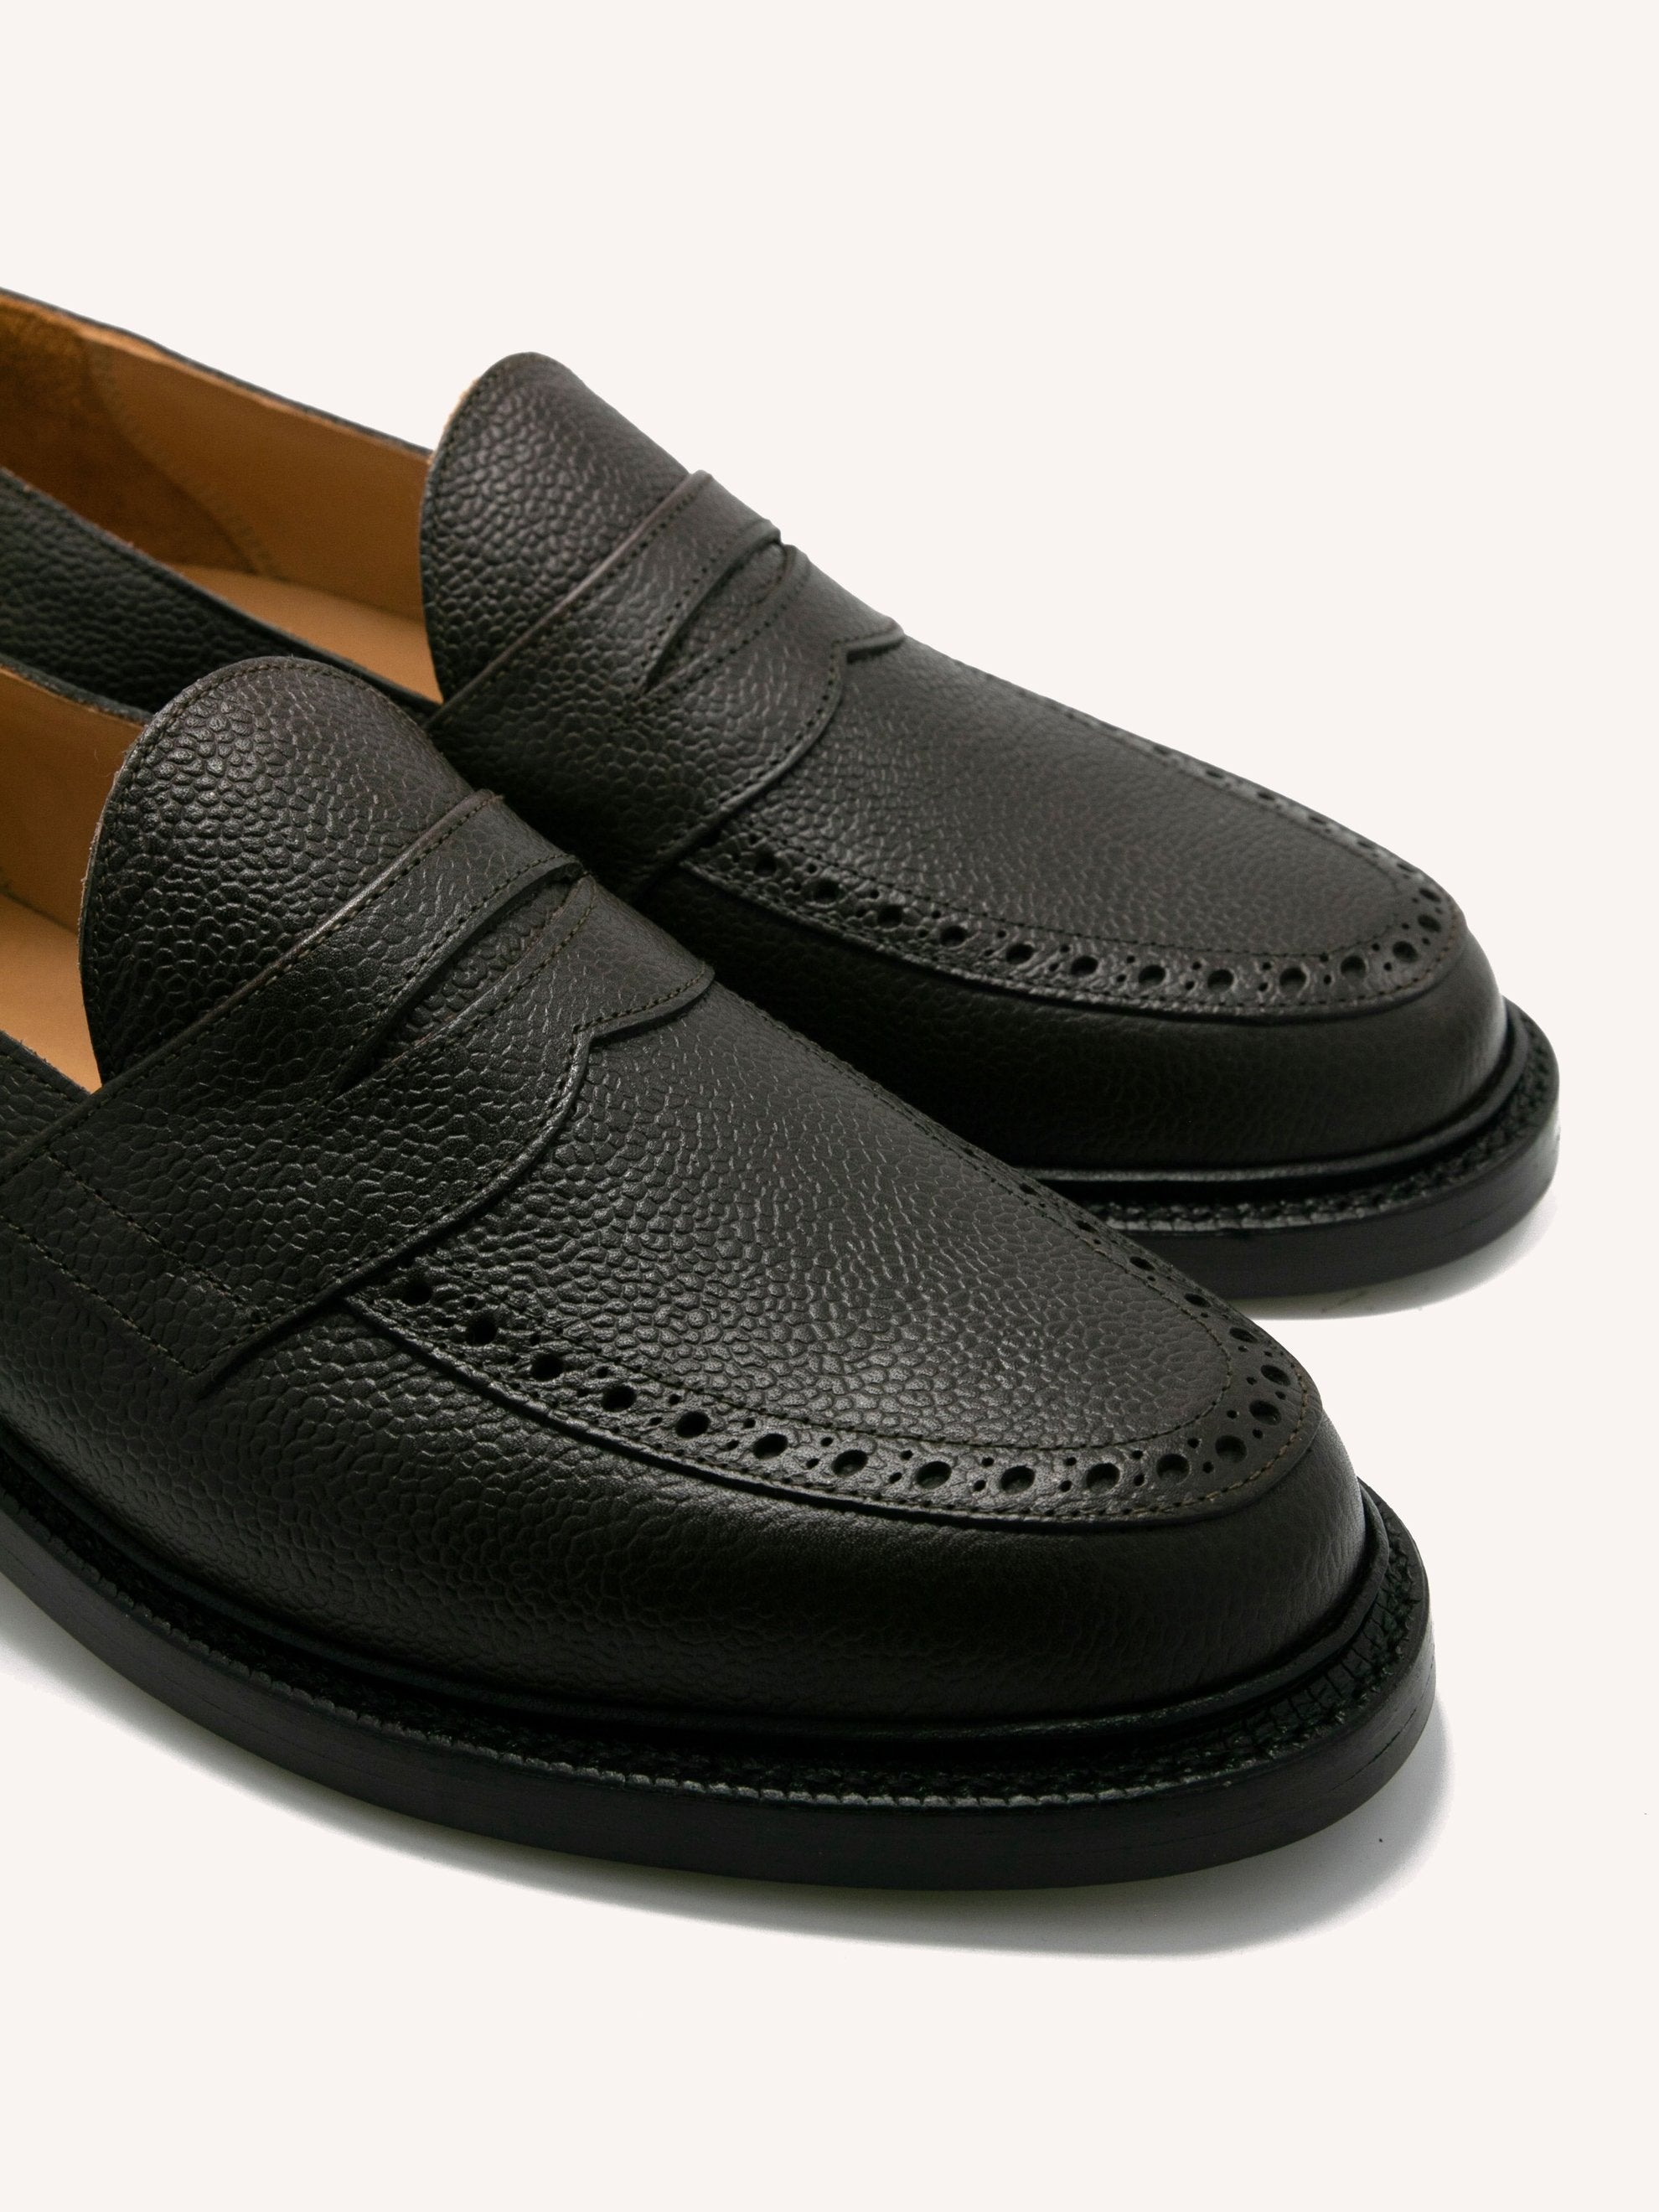 Dark Brown Penny Loafers (Leather Sole/Pebble Grain) 2